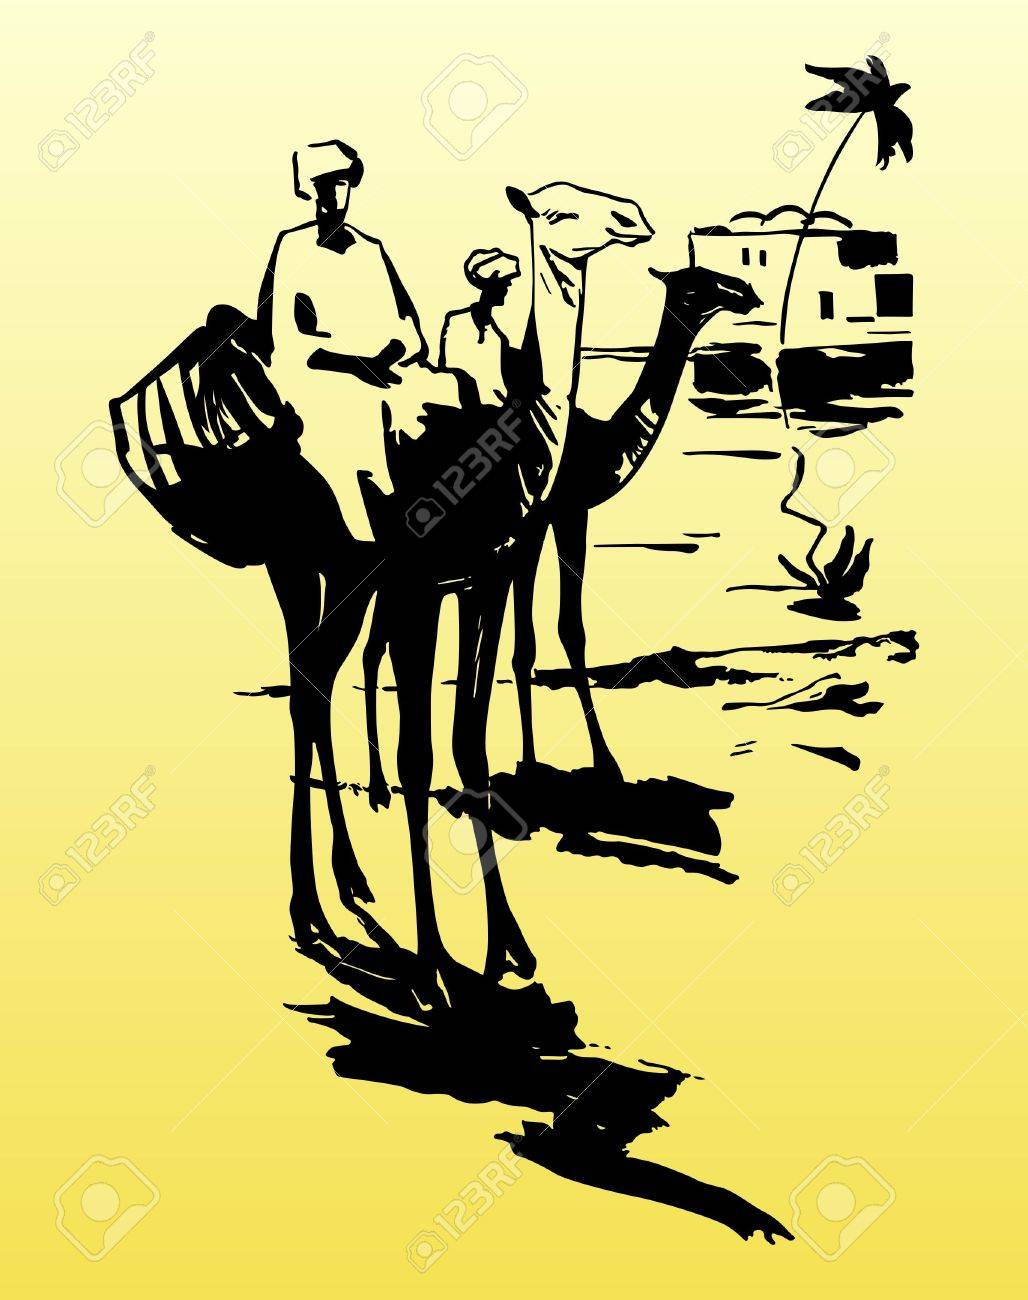 Camels and bedouins in desert - 10534031